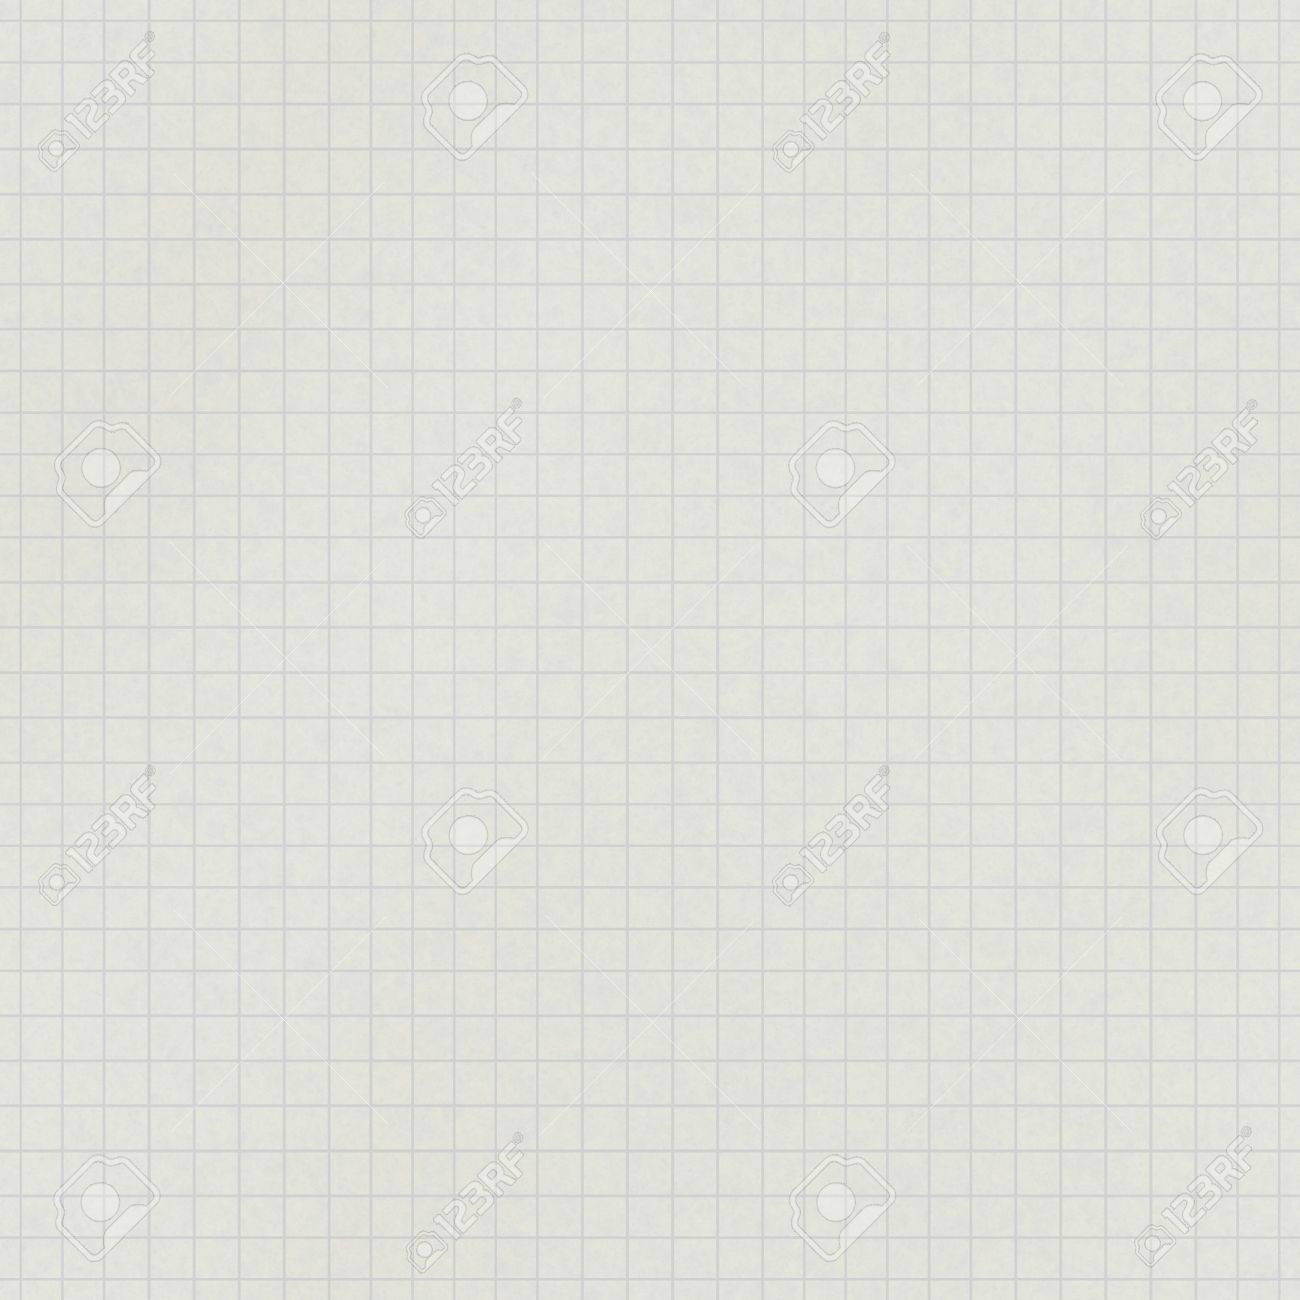 square paper background, tiles seamless as a pattern, plenty of copy space for your text Stock Photo - 3905270